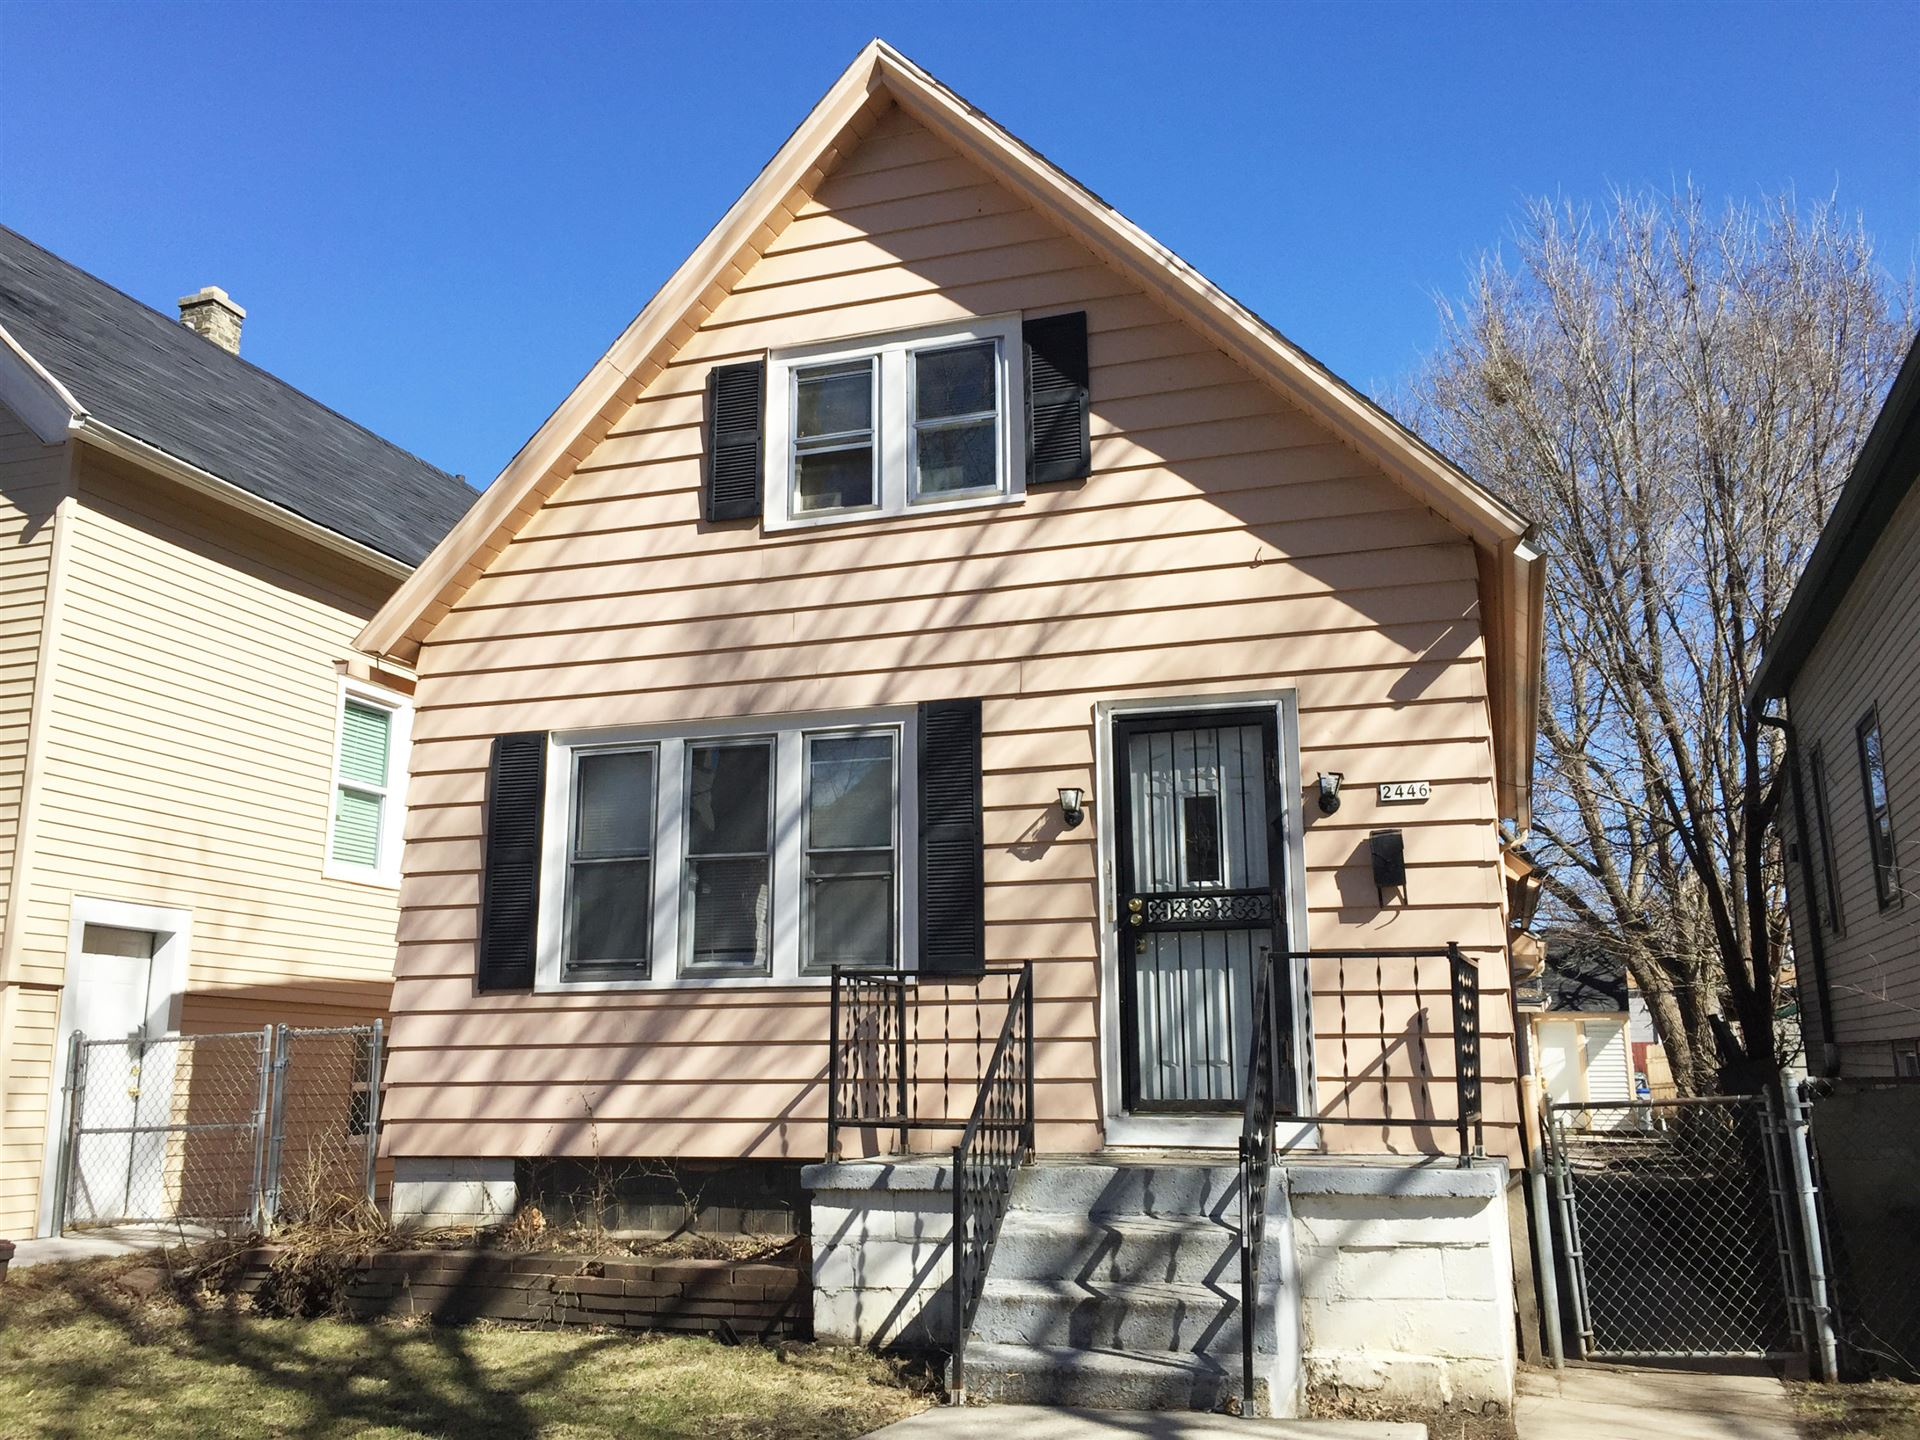 2446 S 12th, Milwaukee, WI 53215 - #: 1703291